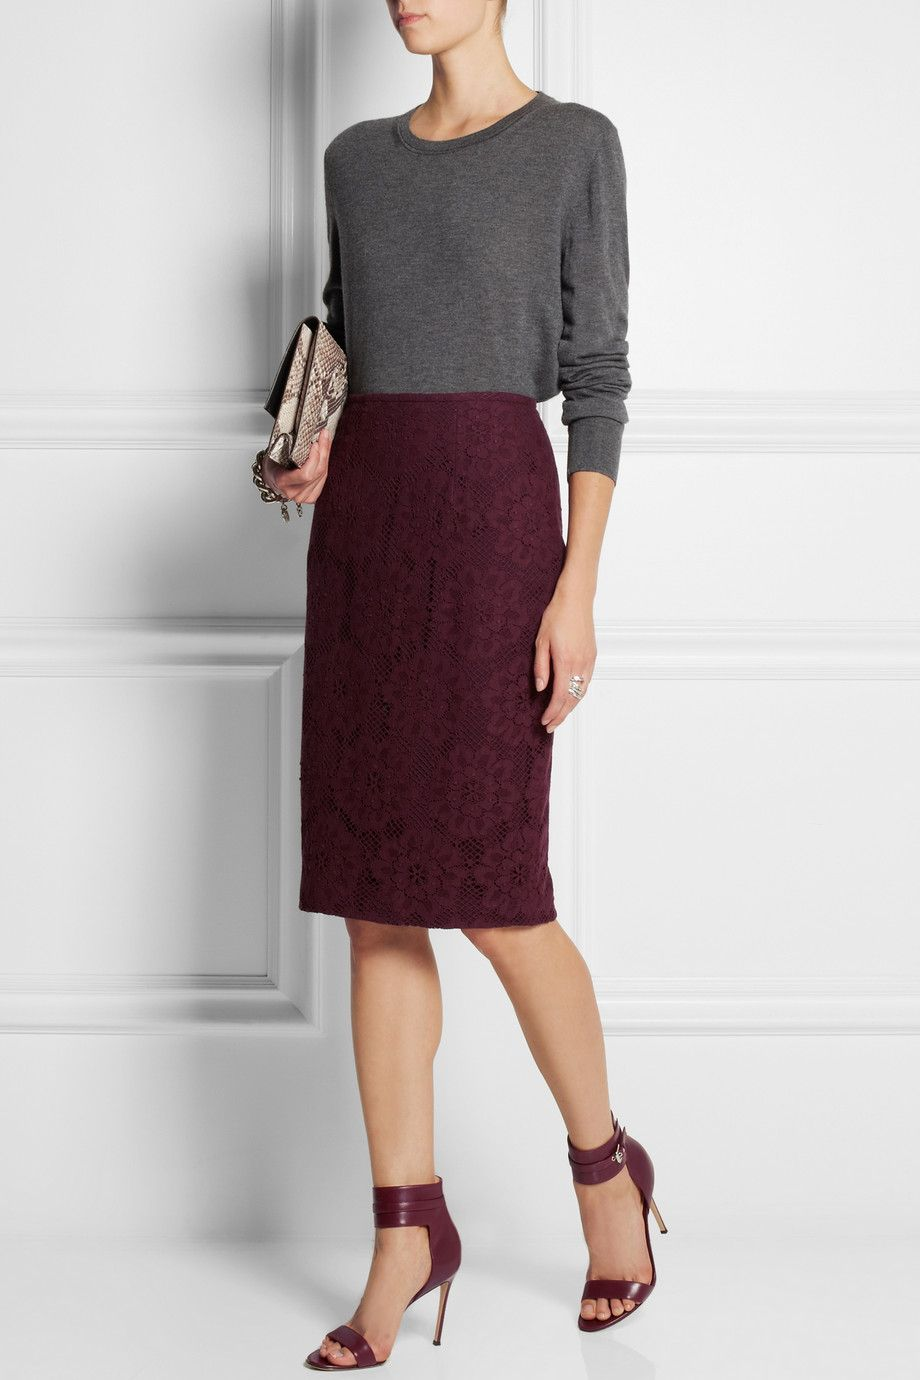 29e0c18c27e8c Burberry Burgundy Lace skirt| Grey sweater color combo | My Style ...